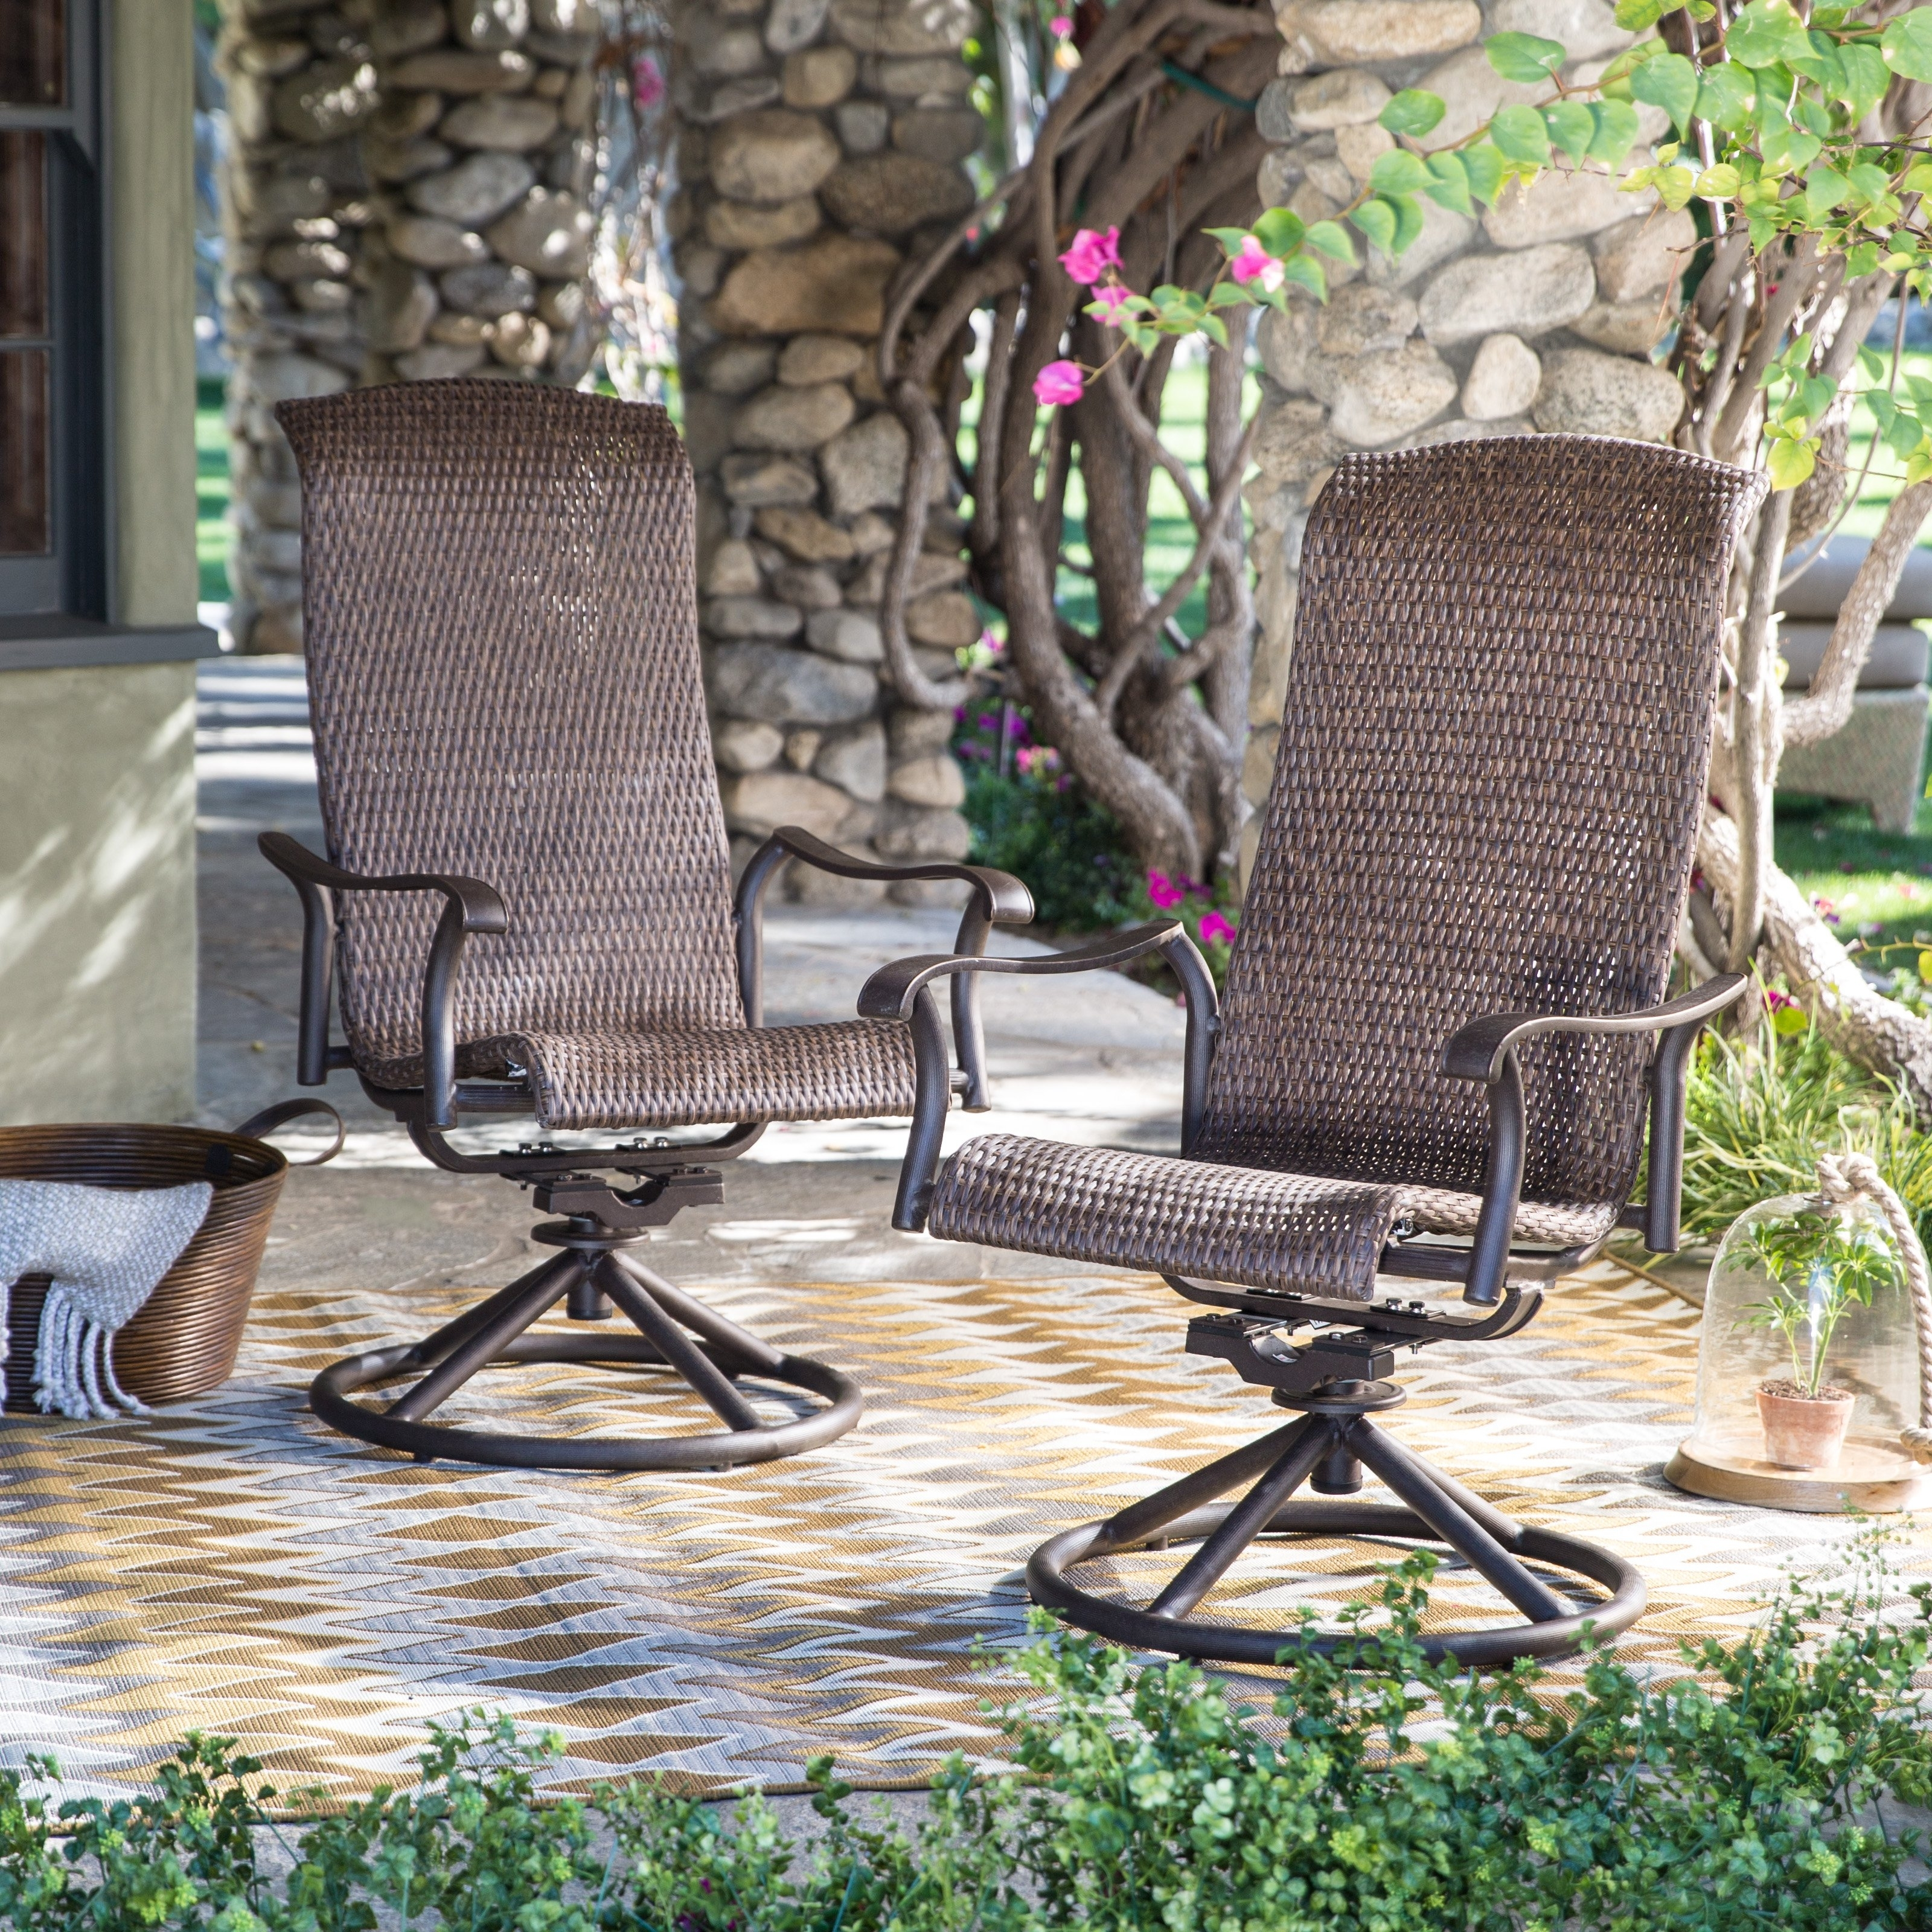 Outdoor Wicker Swivel Rocking Chair – Outdoor Designs Within Popular Brown Wicker Patio Rocking Chairs (View 18 of 20)